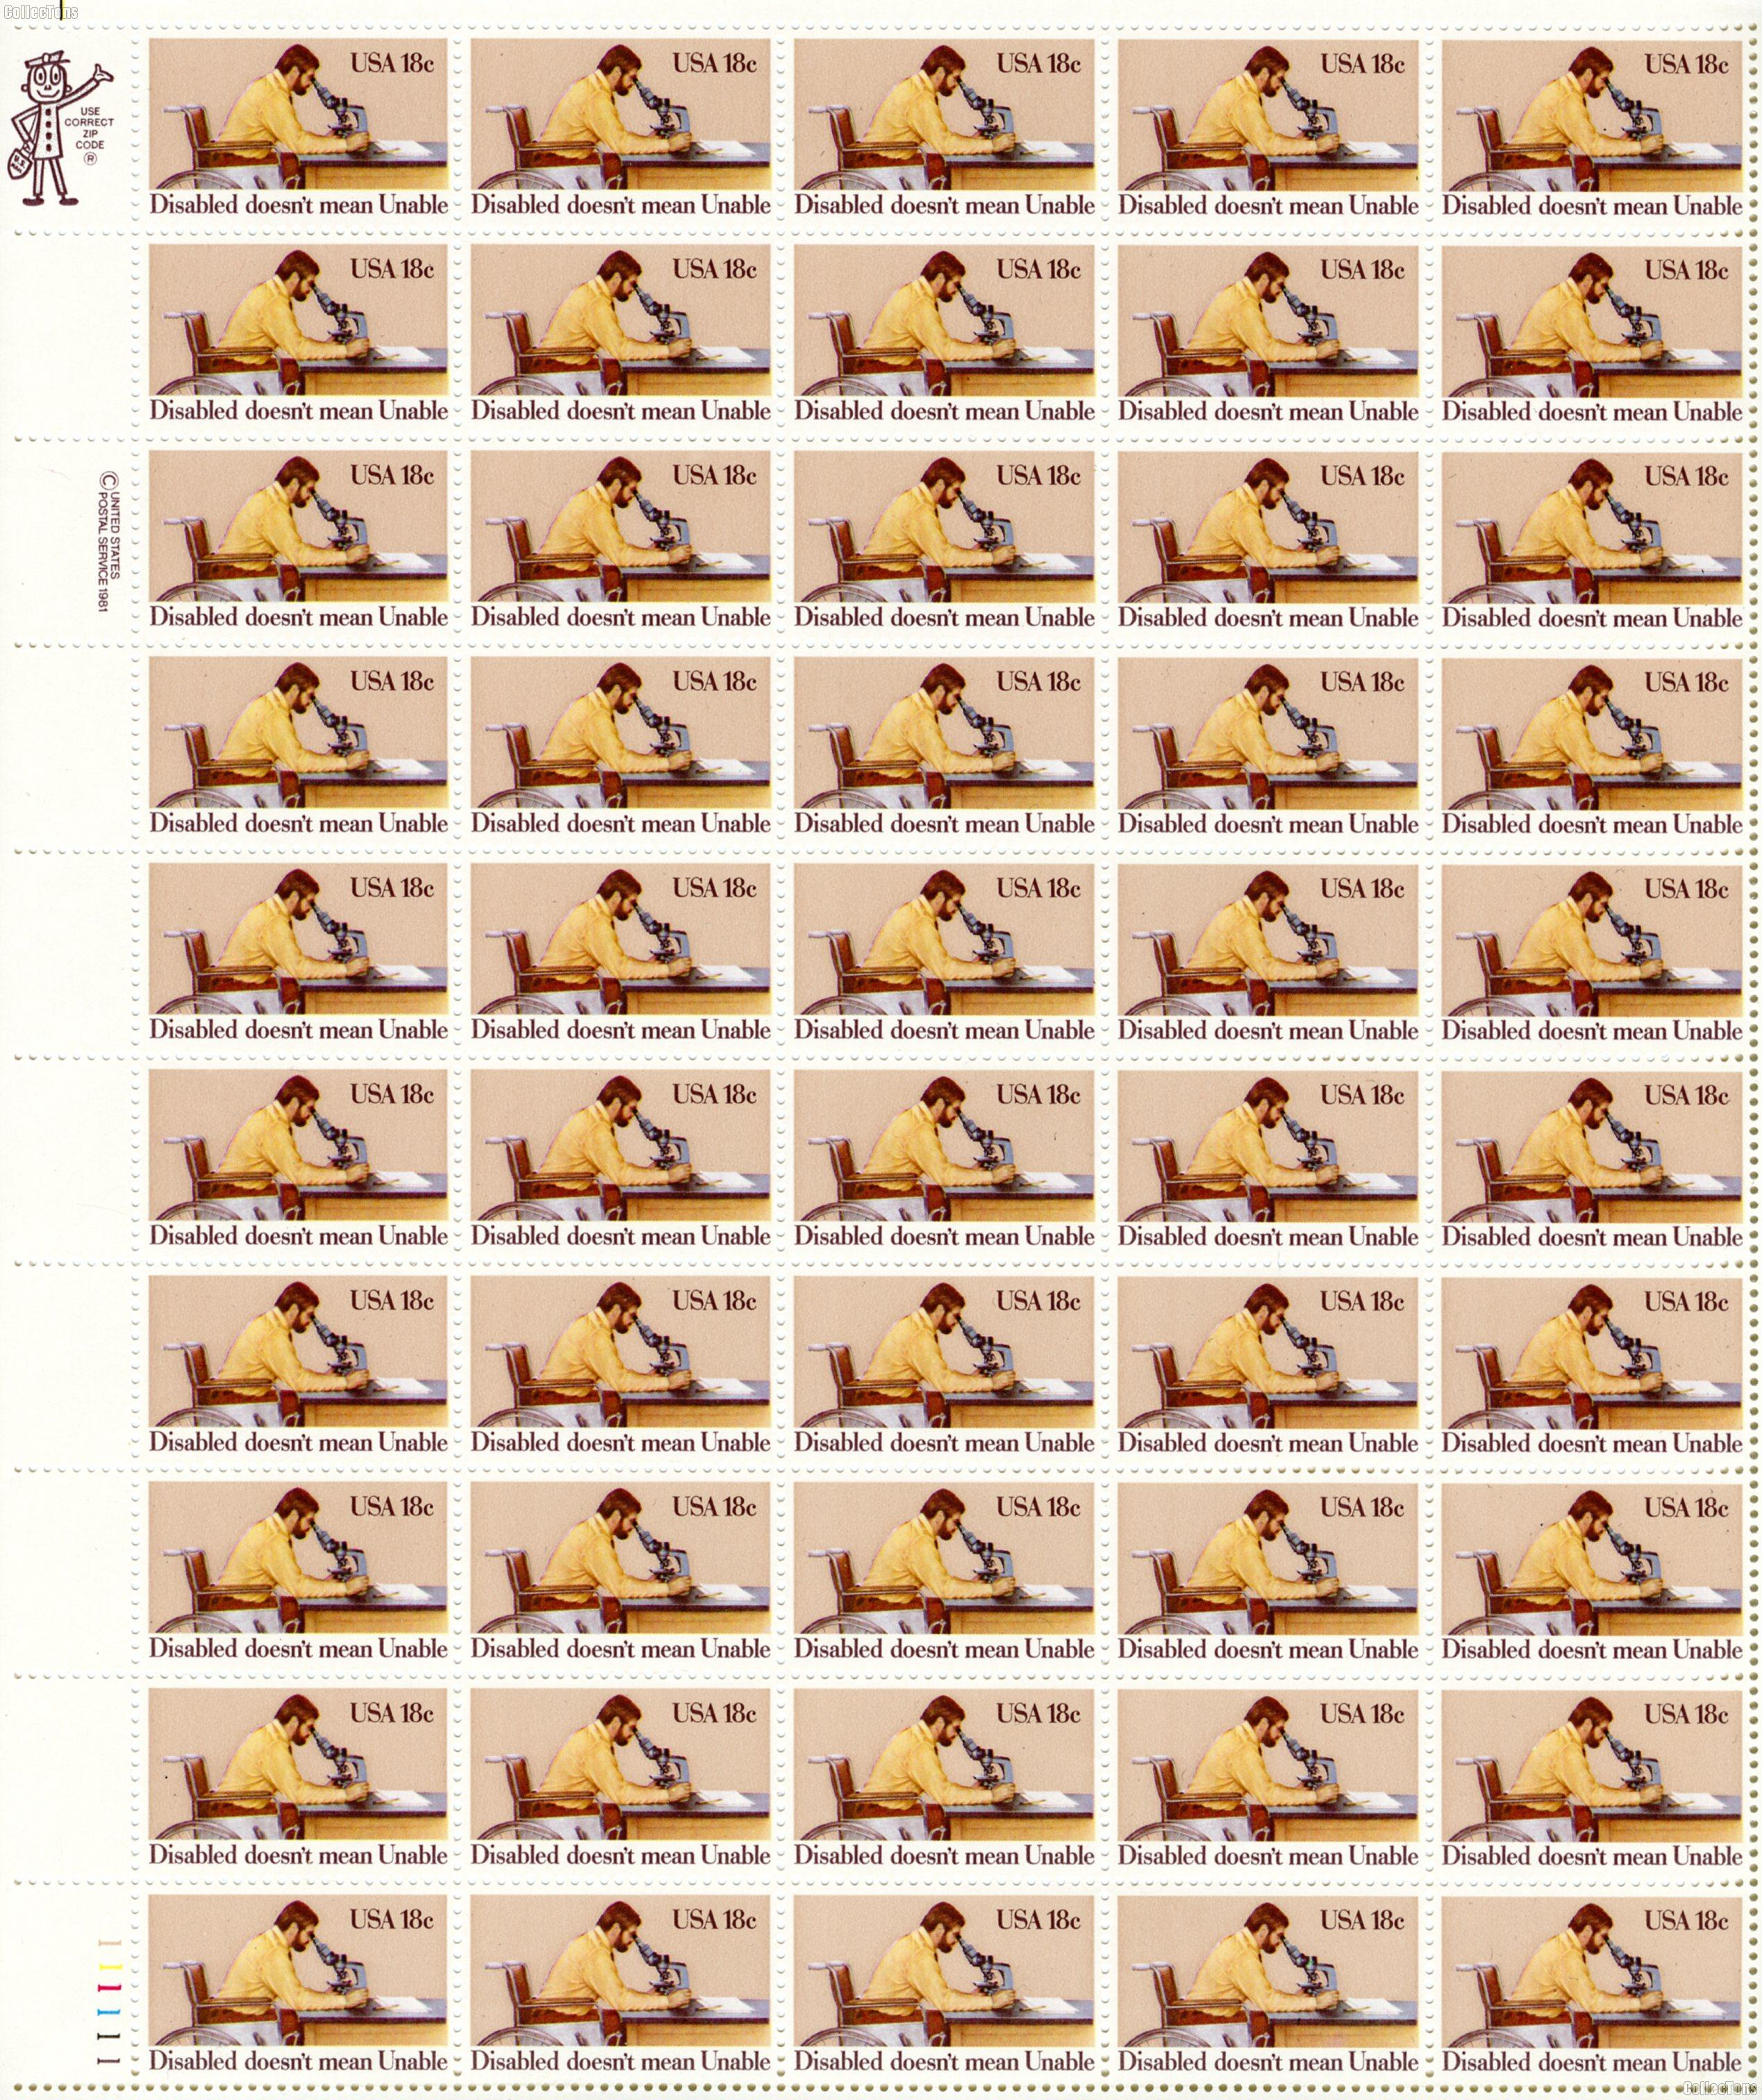 1981 Disabled Persons 18 Cent US Postage Stamp MNH Sheet of 50 Scott #1925